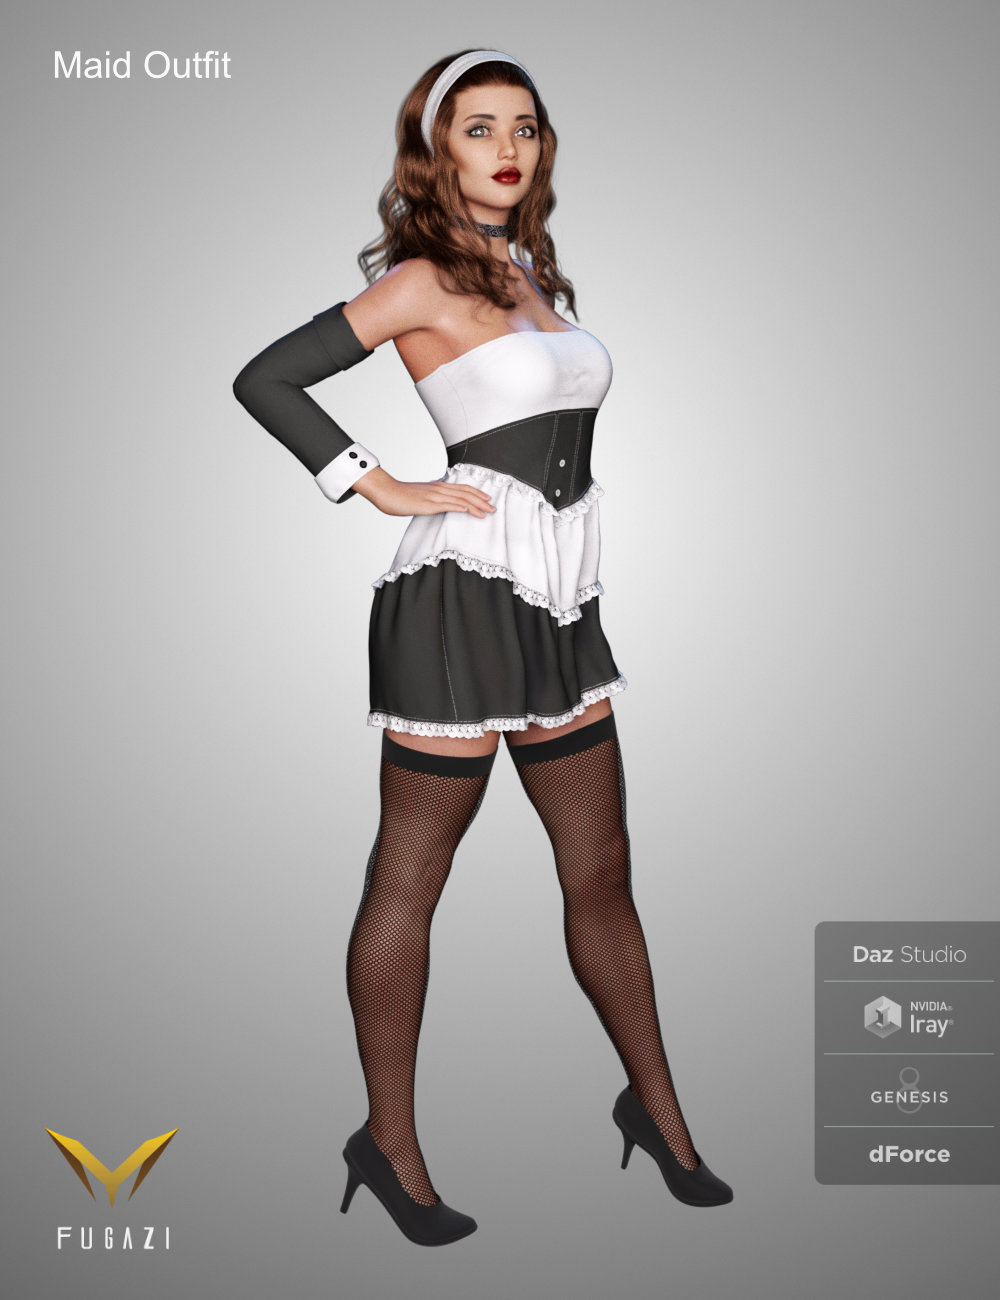 FG Maid Outfit for Genesis 8 Females by: Fugazi1968Ironman, 3D Models by Daz 3D